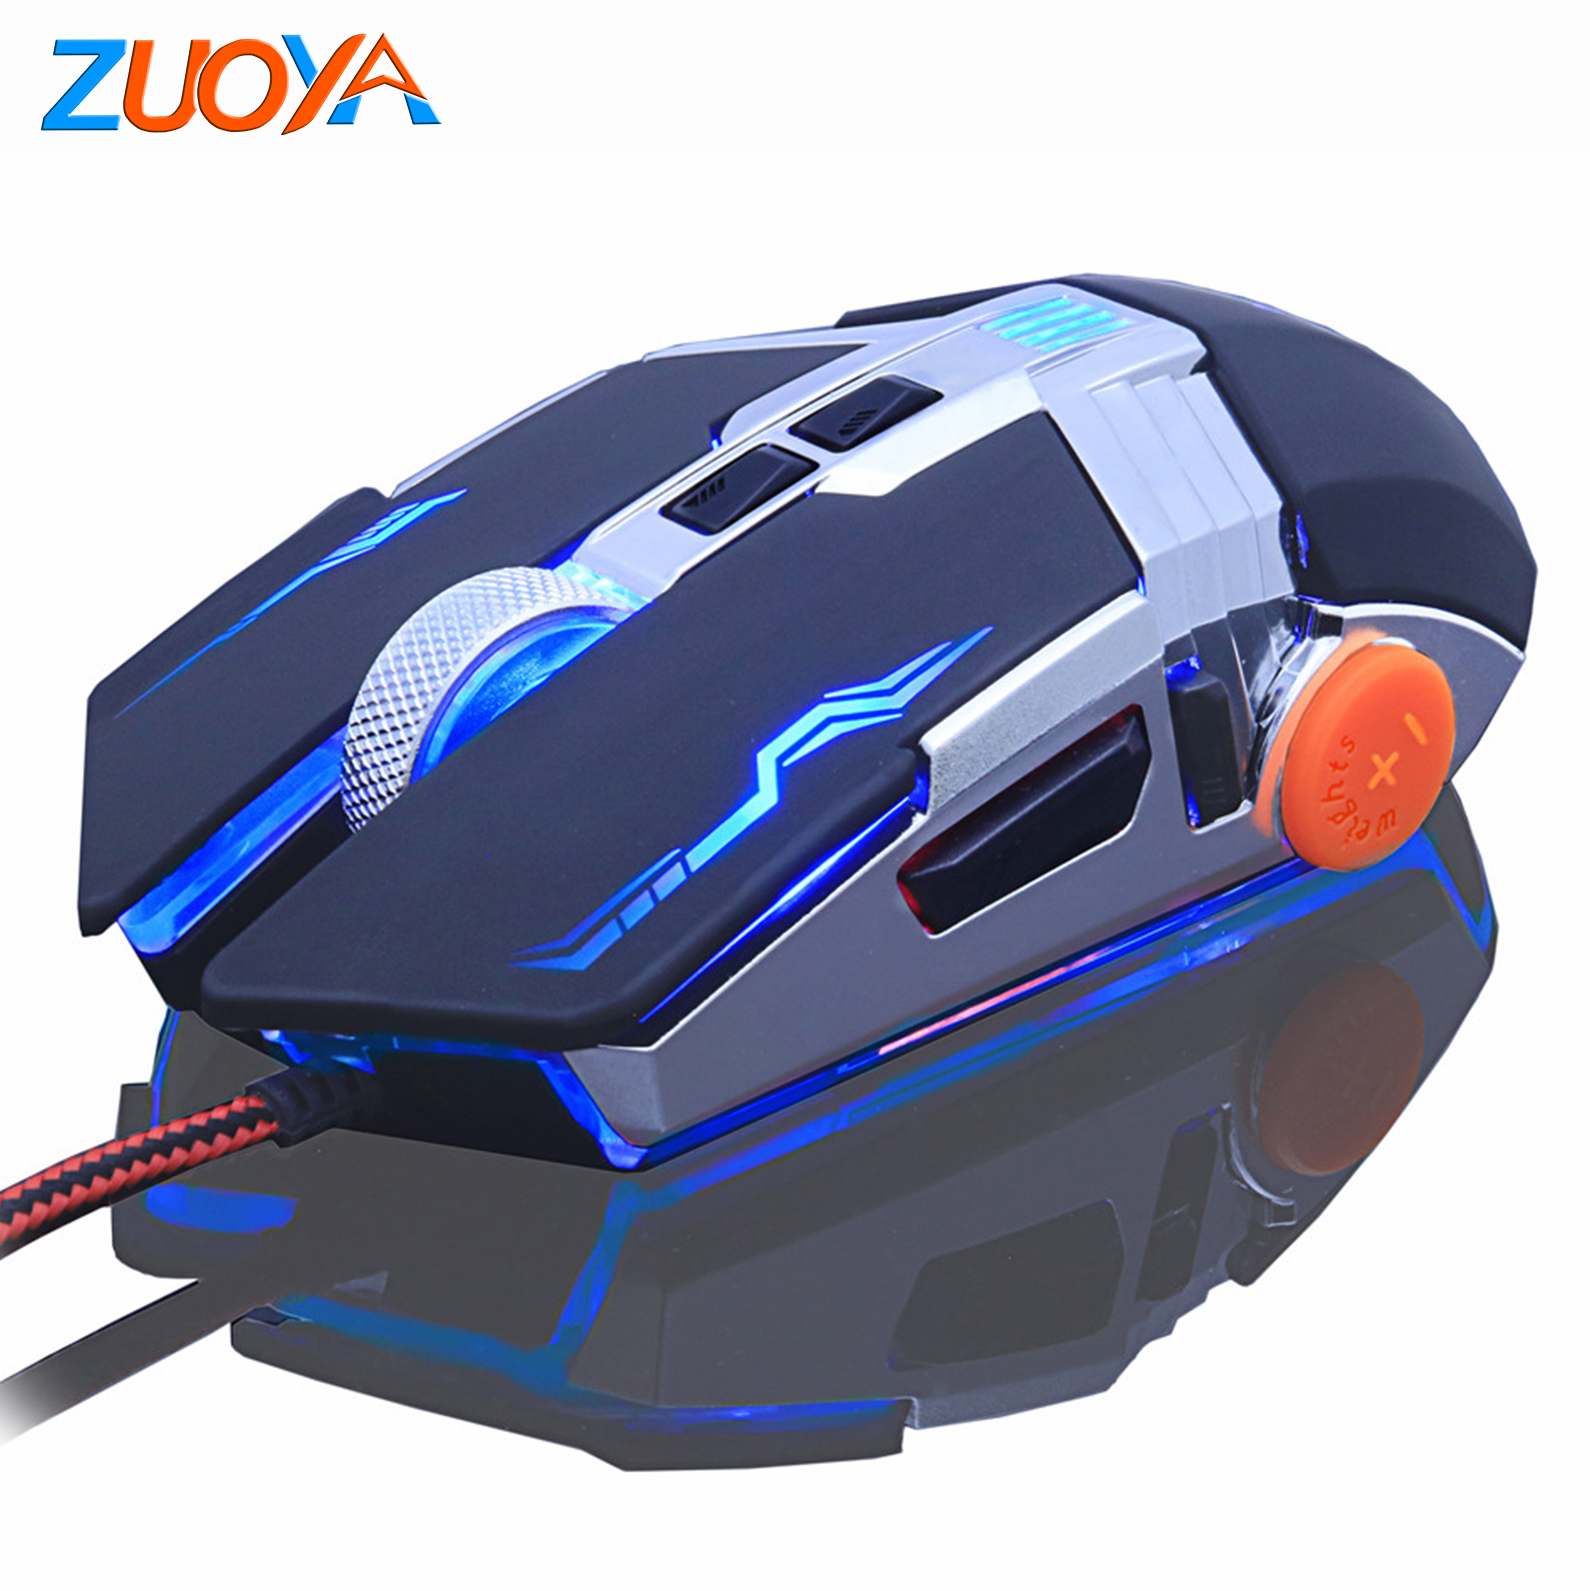 Gaming Mouse 8D 3200DPI Adjustable Wired Optical LED Computer Mouse USB Cable Mute Mouse Suitable for Laptop,B Wired Gaming Gaming Mouse